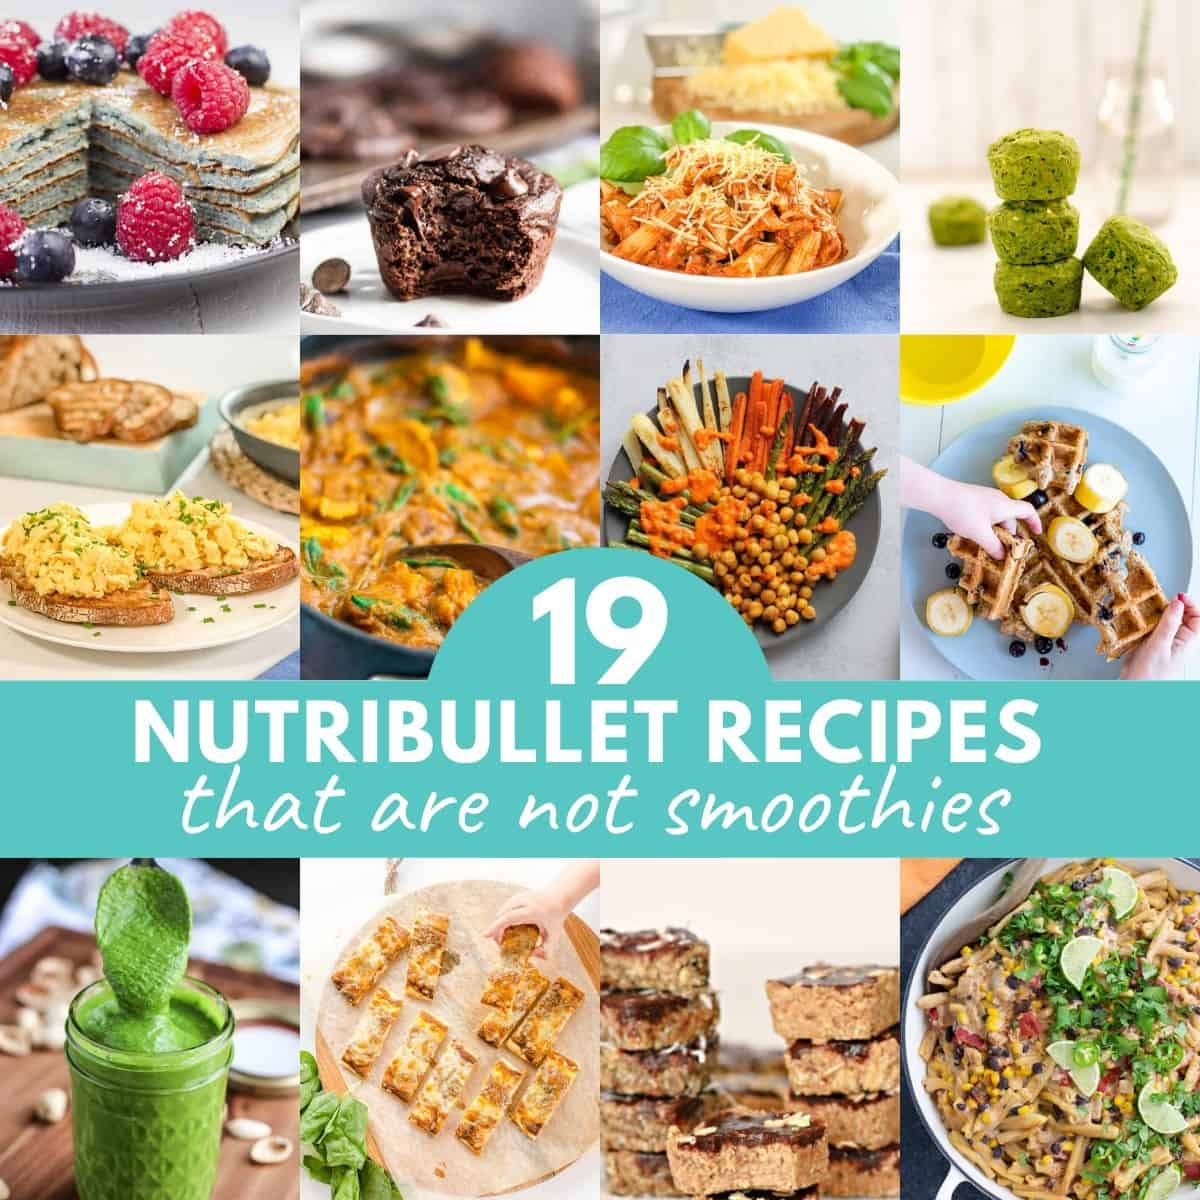 12 image collage of nutribullet recipes with text overlay.